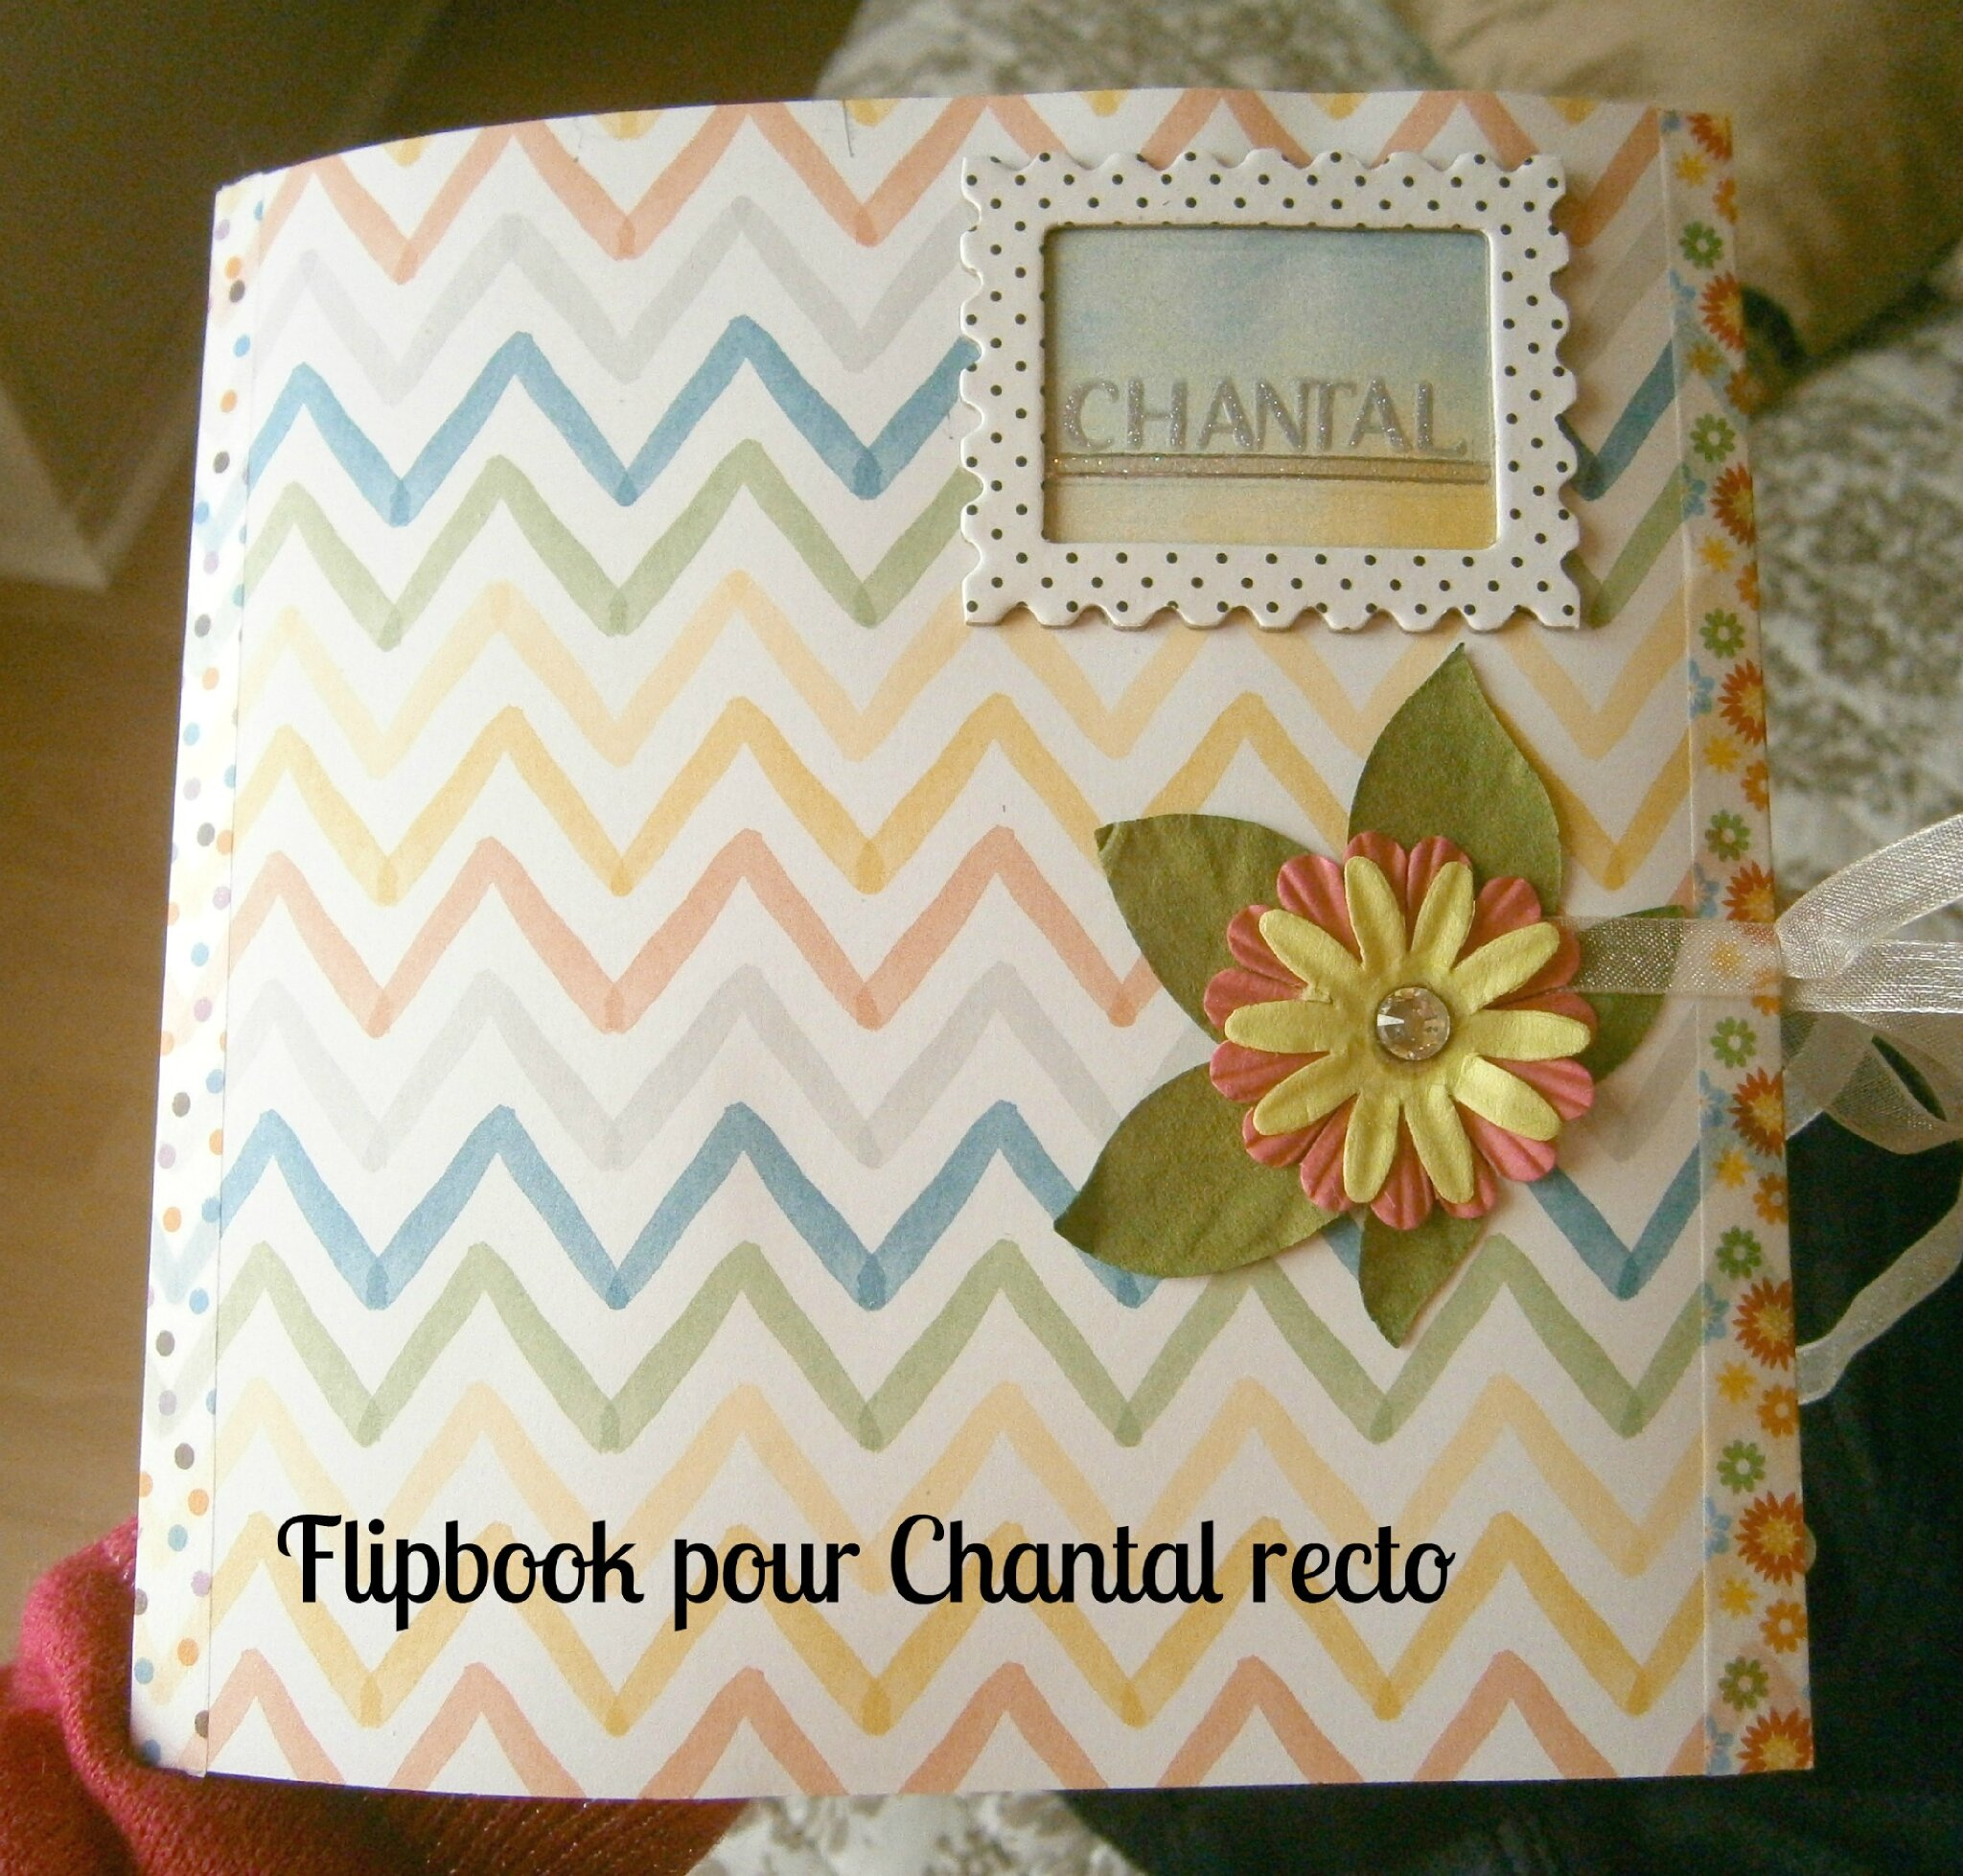 1 Flipbook pour Chantal